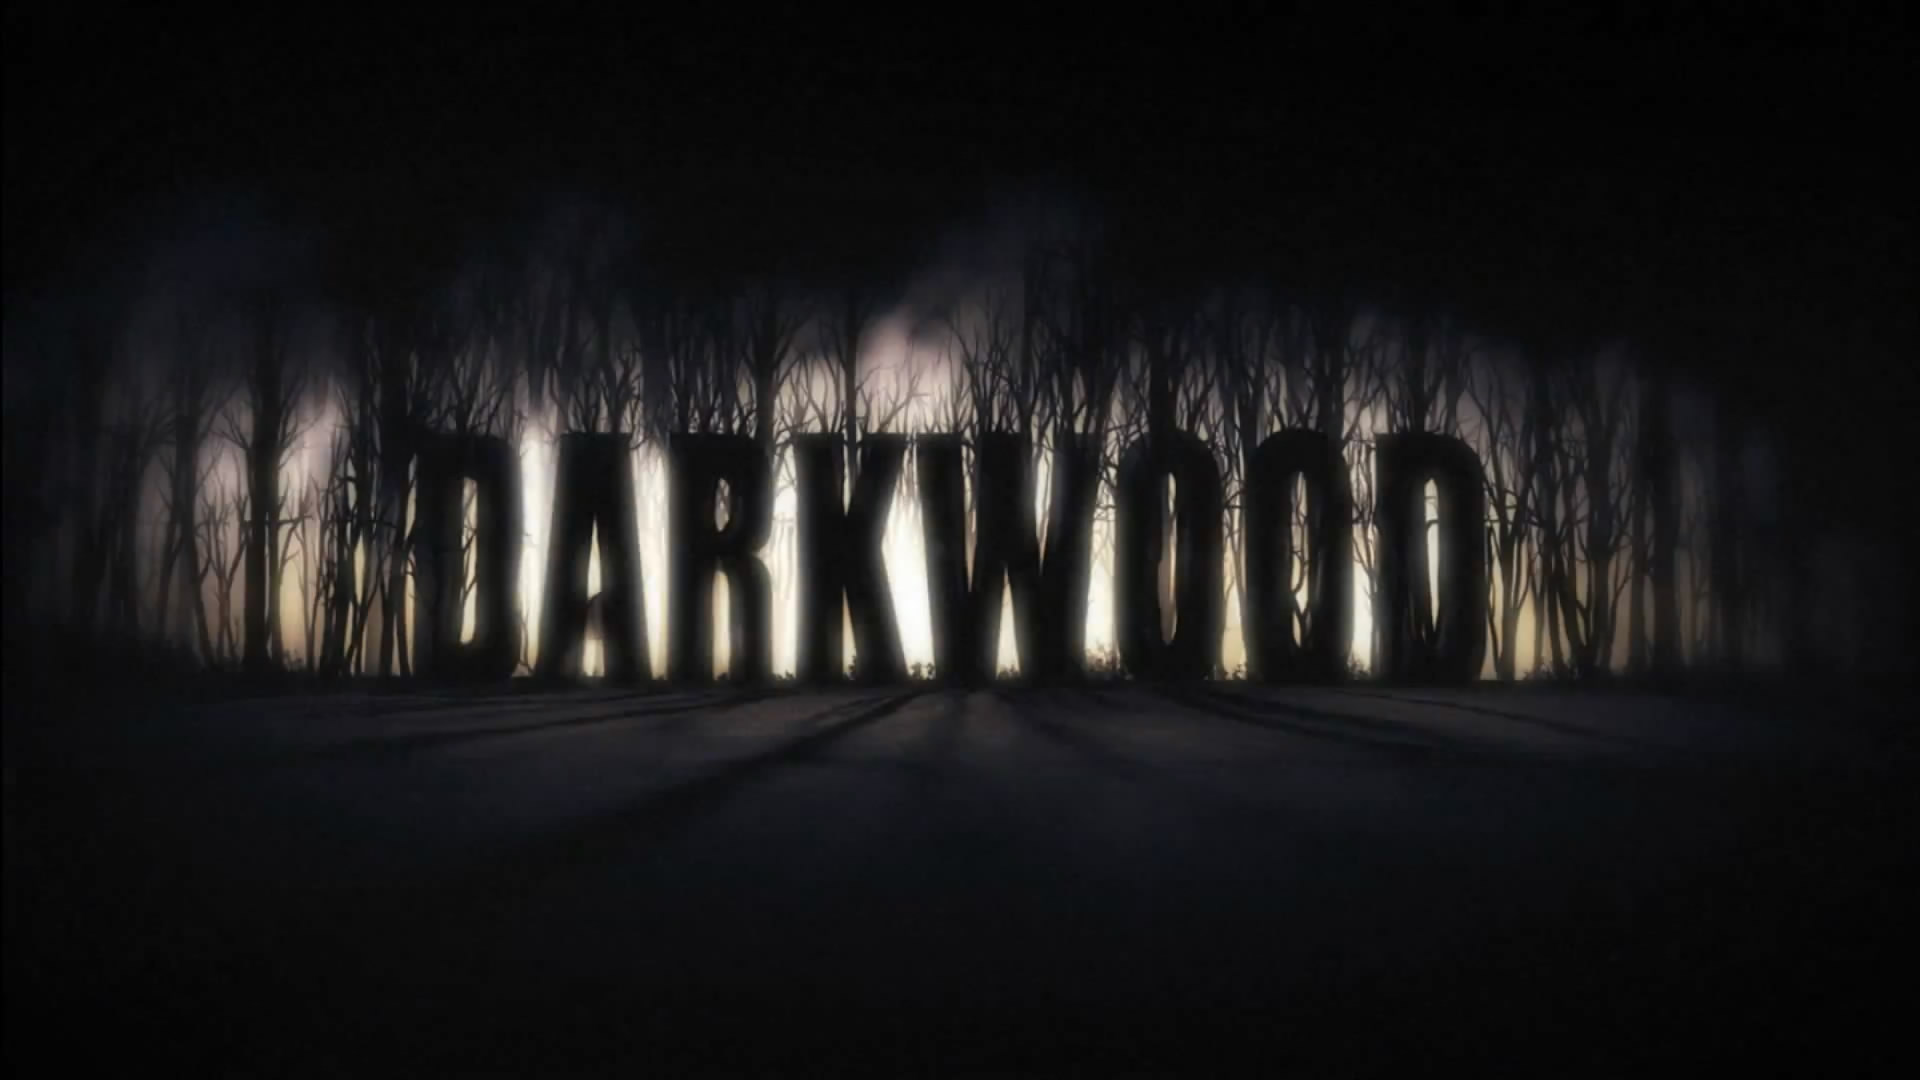 This Darkwood Trailer Is Super Creepy